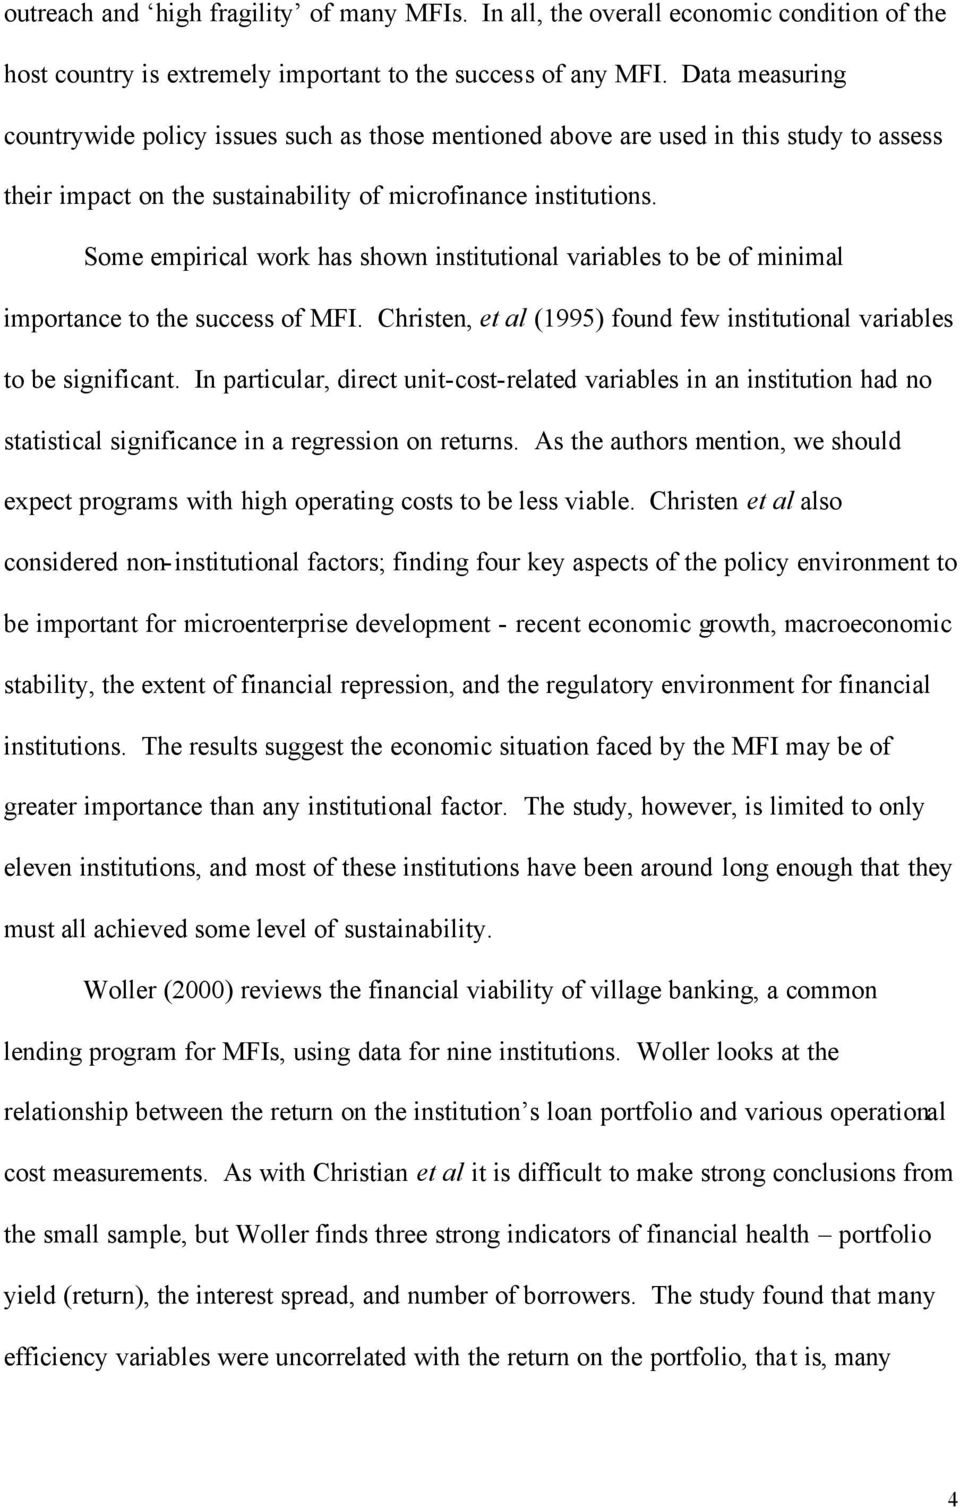 Some empirical work has shown institutional variables to be of minimal importance to the success of MFI. Christen, et al (1995) found few institutional variables to be significant.